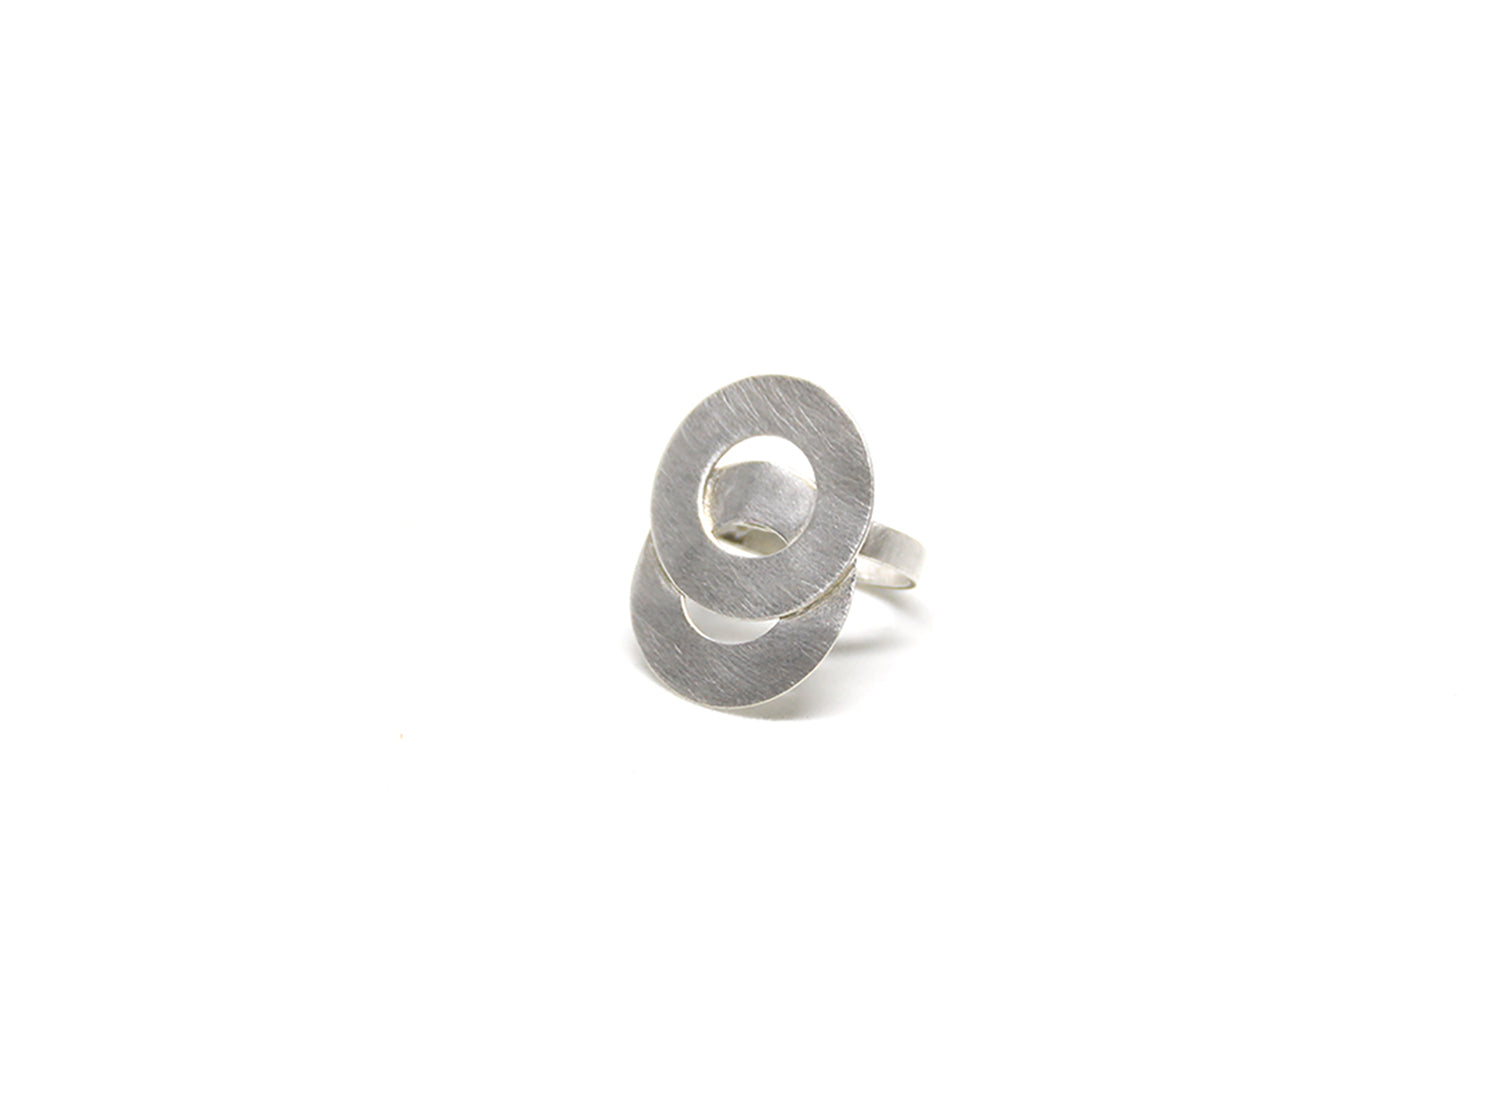 llayers jewelry ring loop silver bague geometric bague cercles minimale